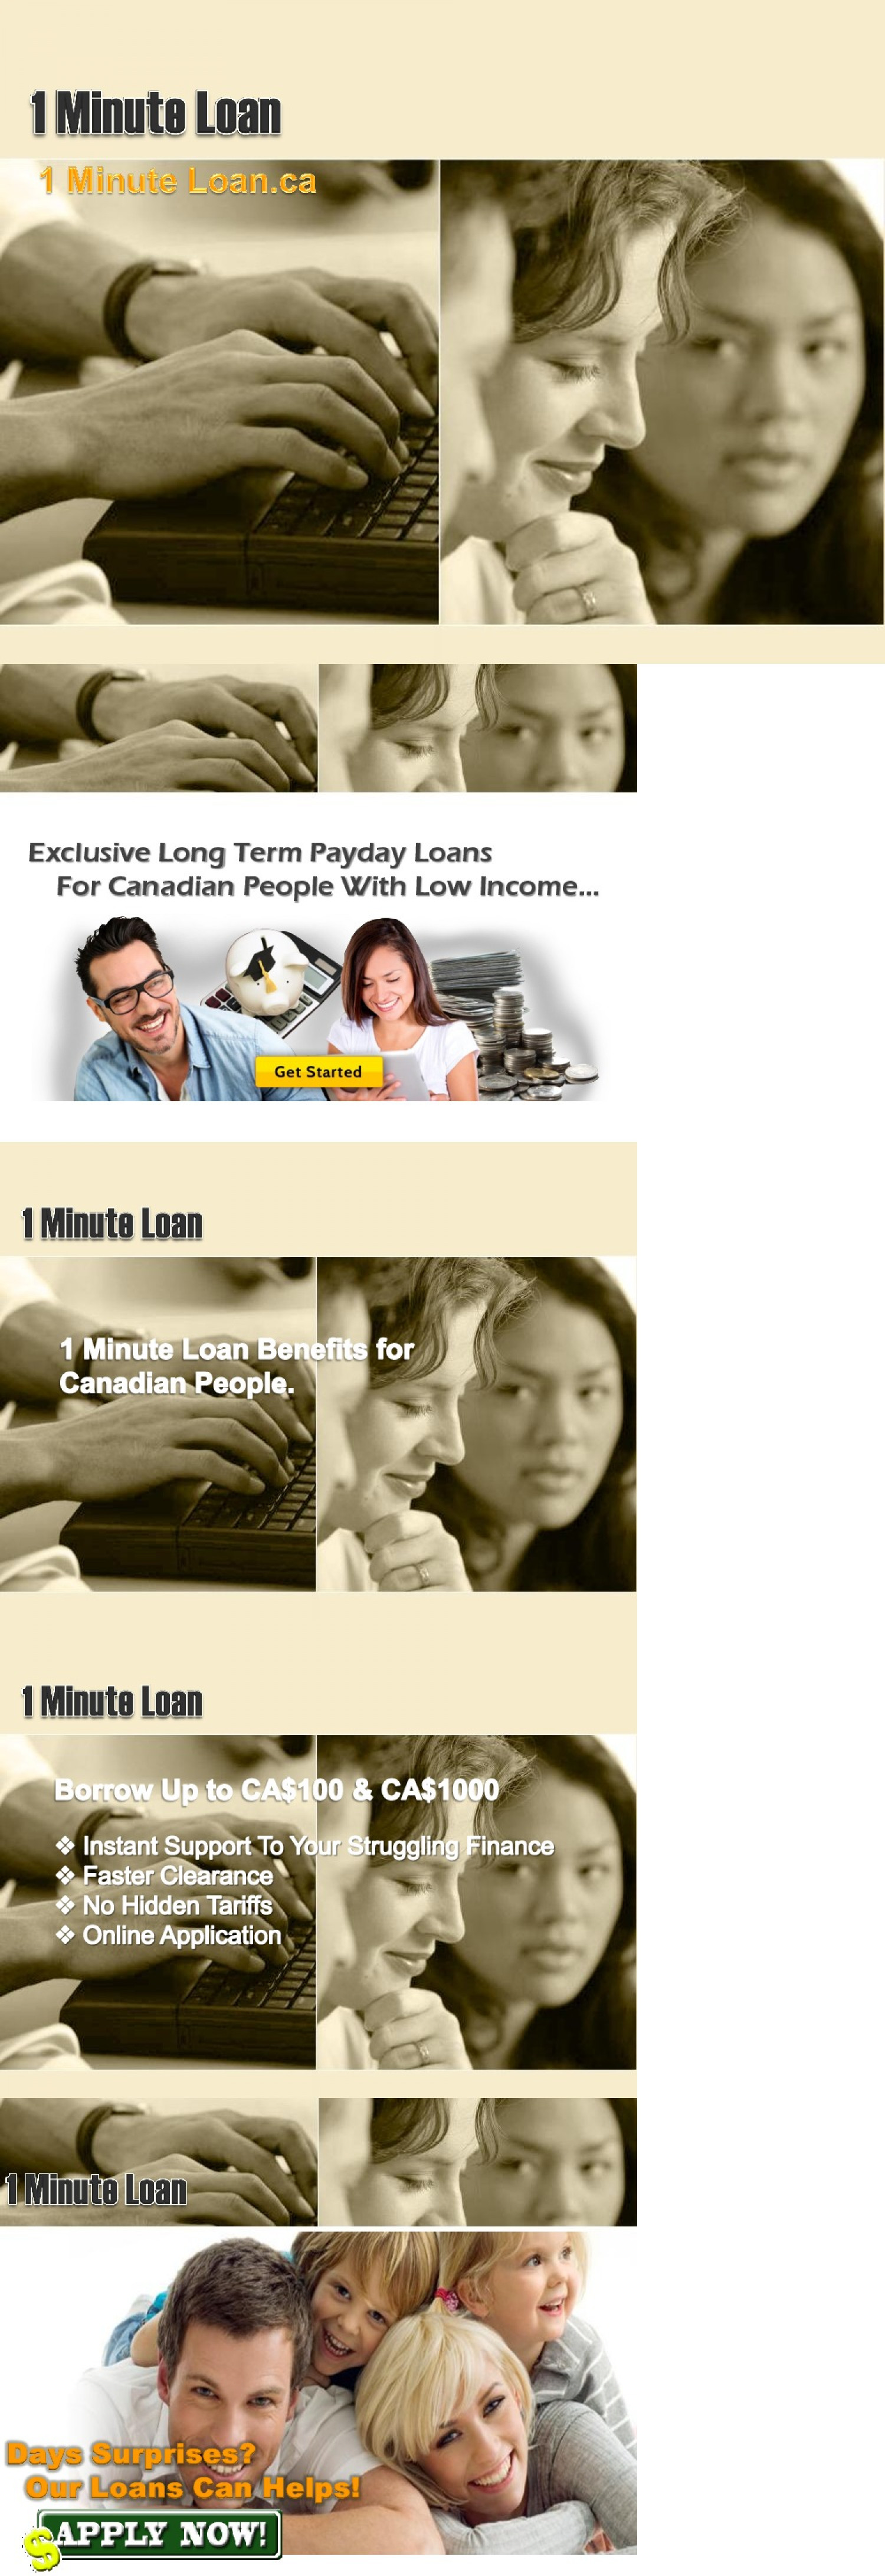 payday loan in minutes - 3